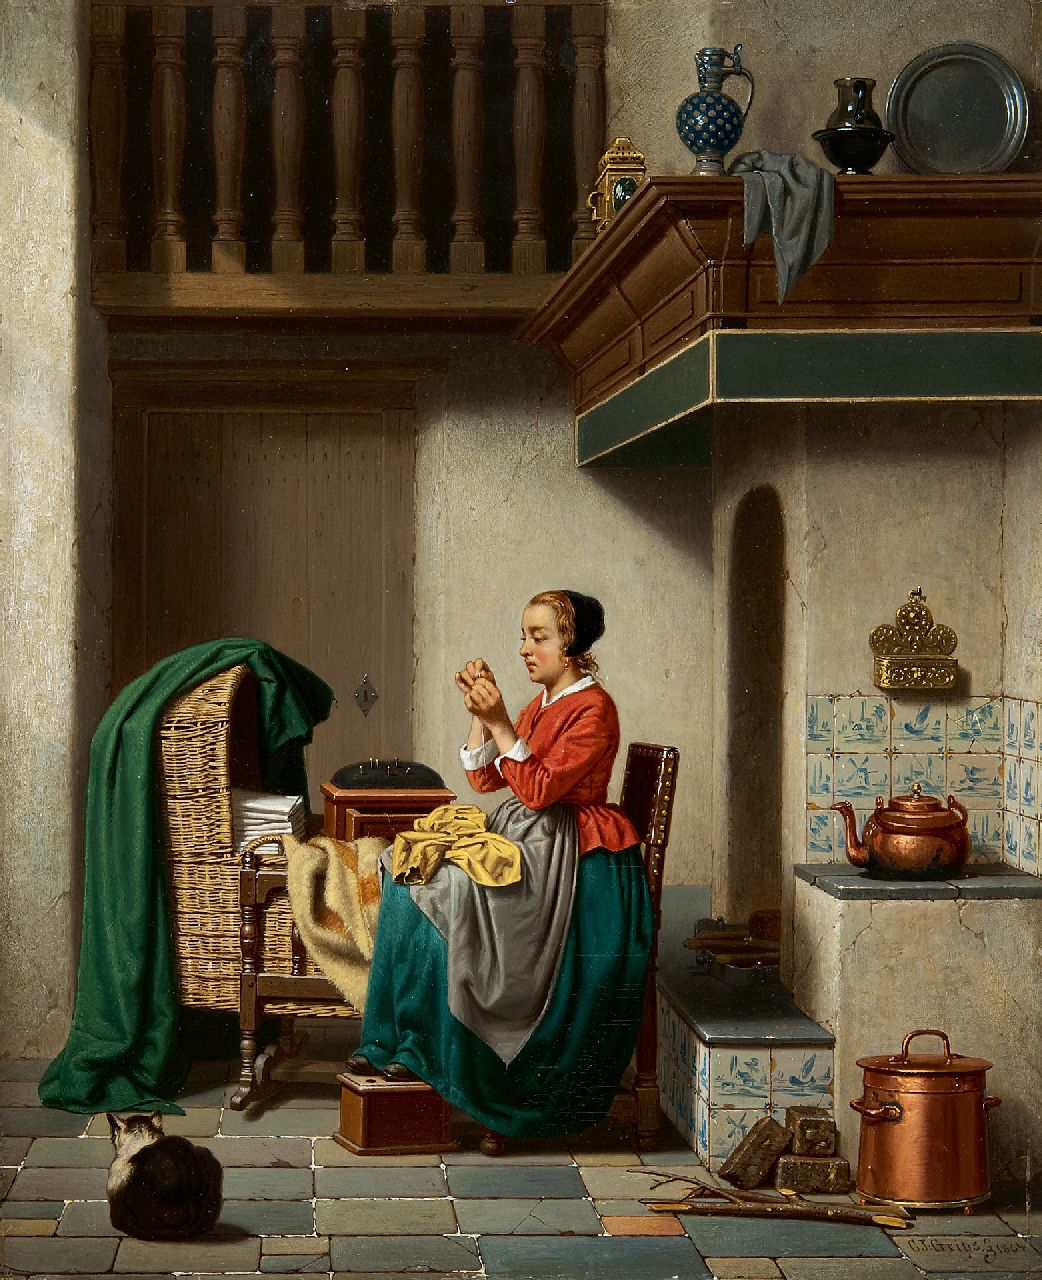 Carel Jozeph Grips | Mending the garments, oil on panel, 36.0 x 29.3 cm, signed l.r. and dated 1864